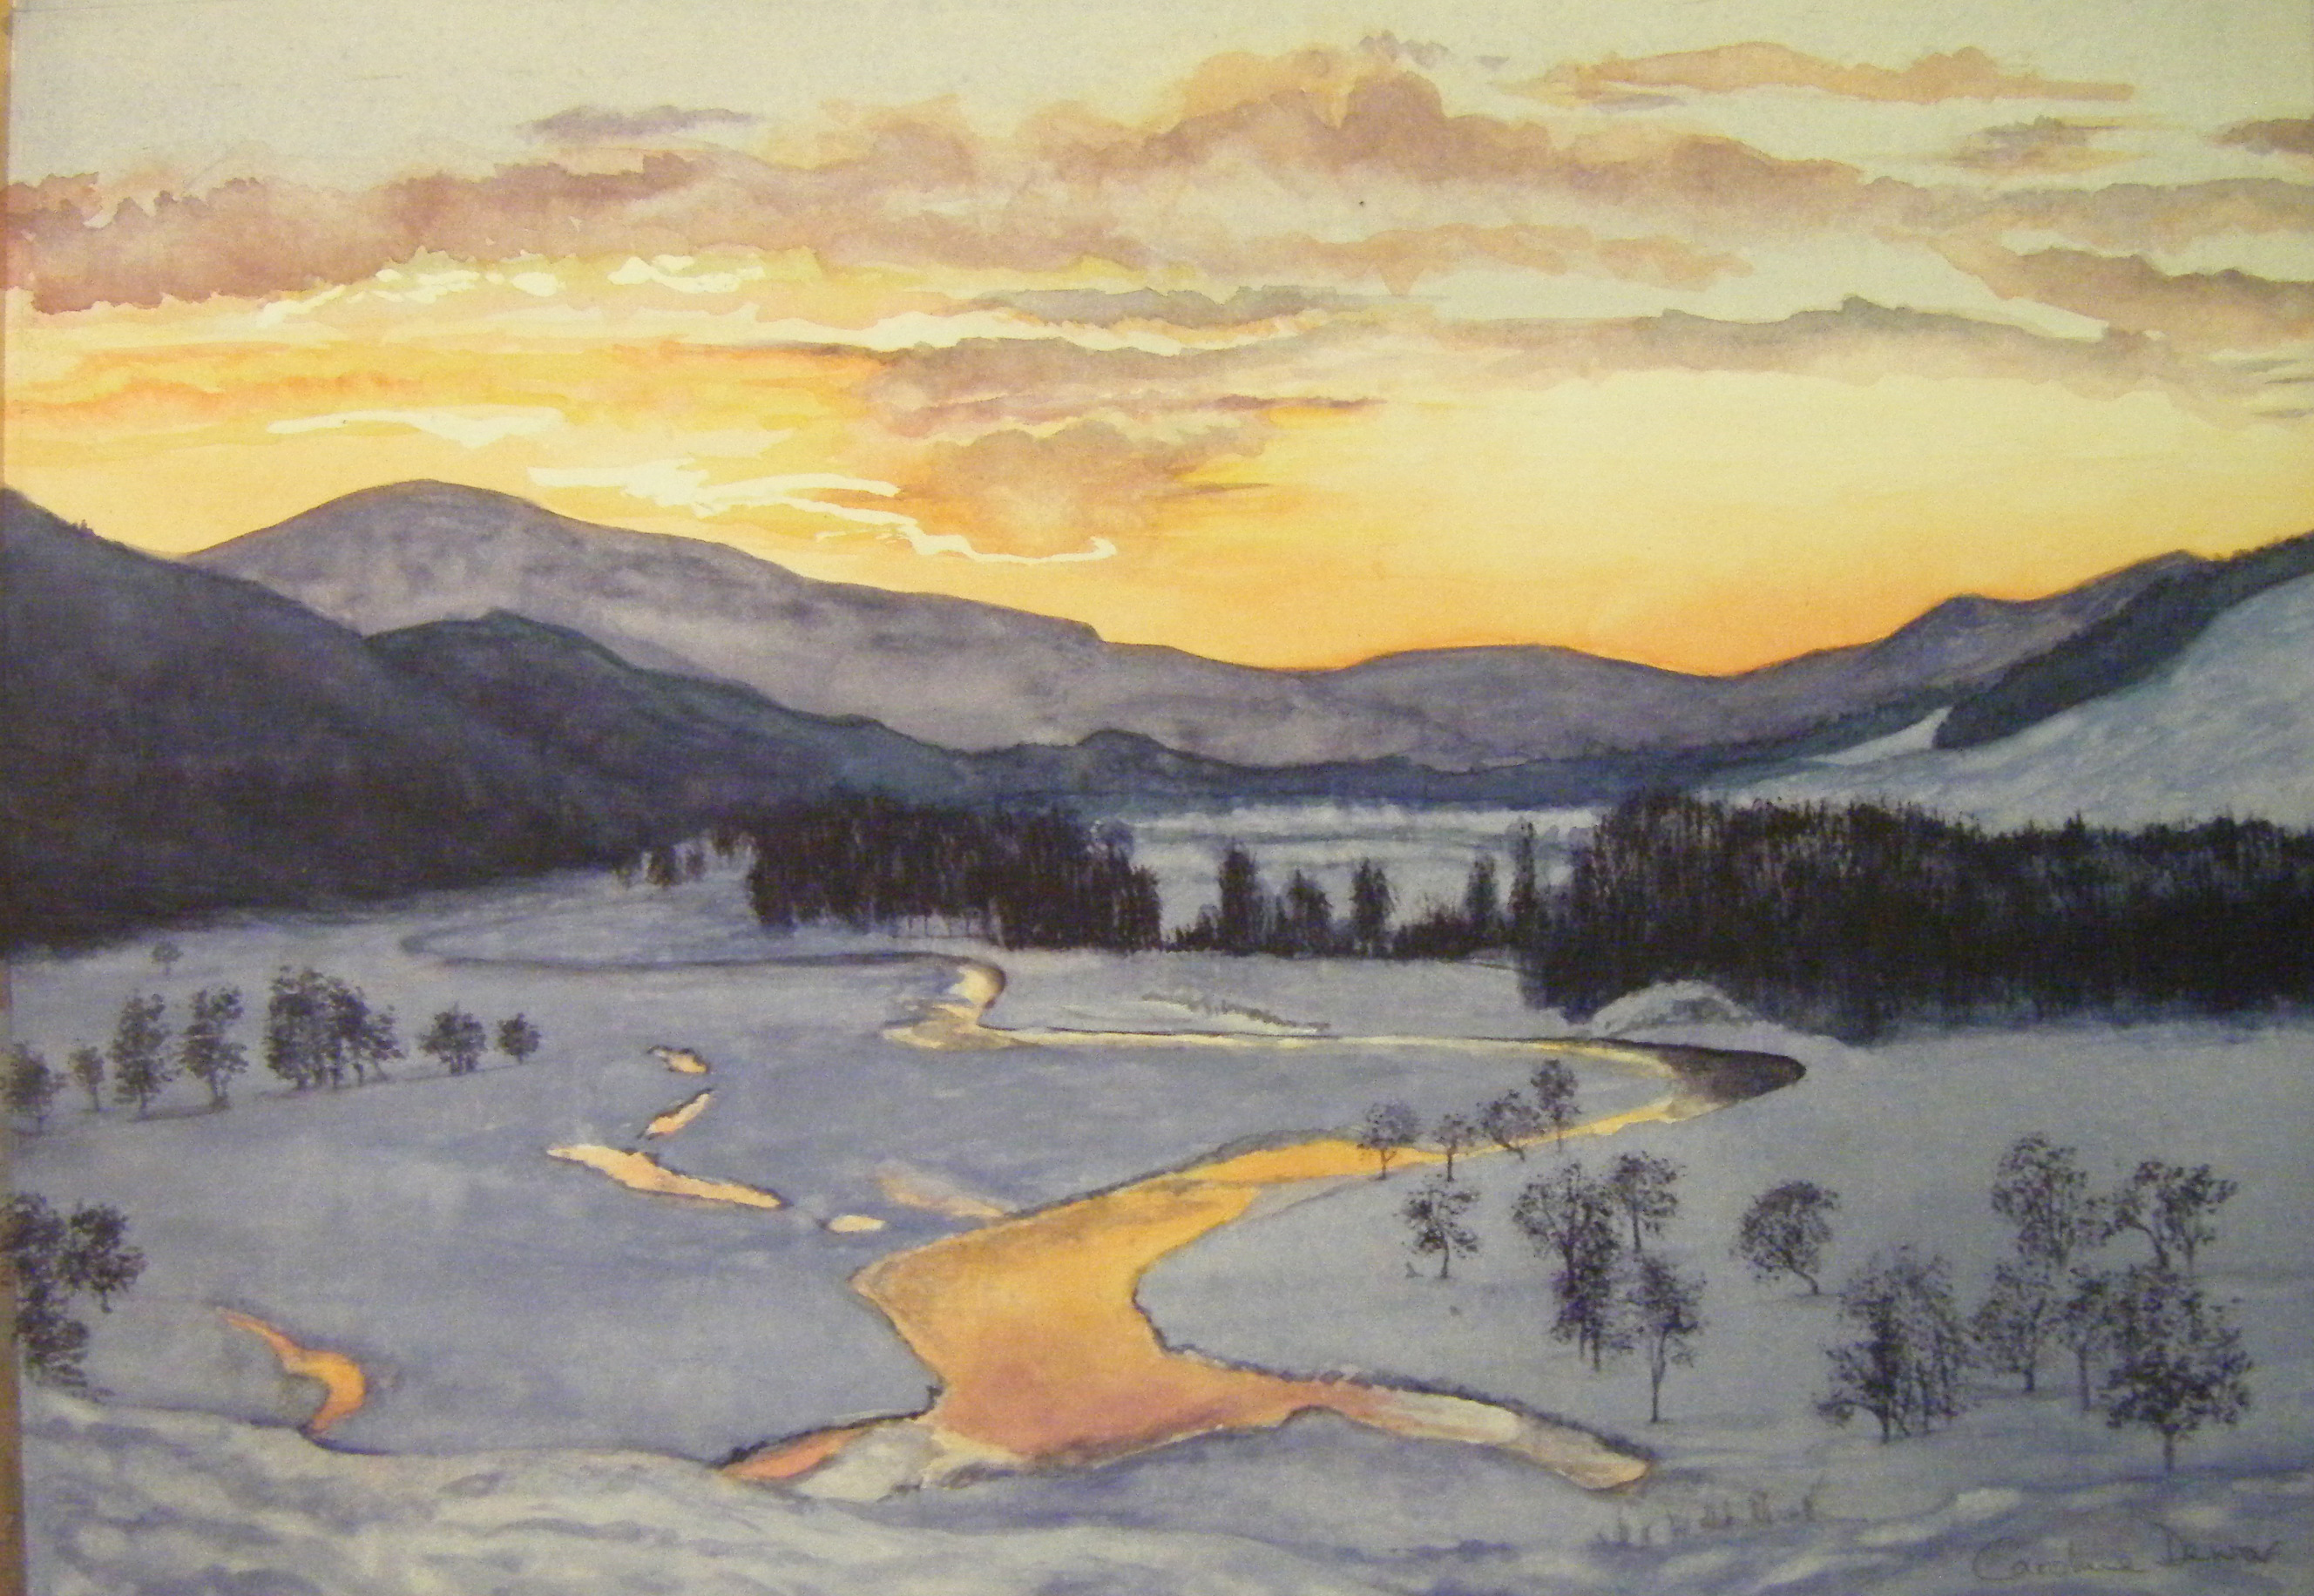 wixSunset in snowy landscape